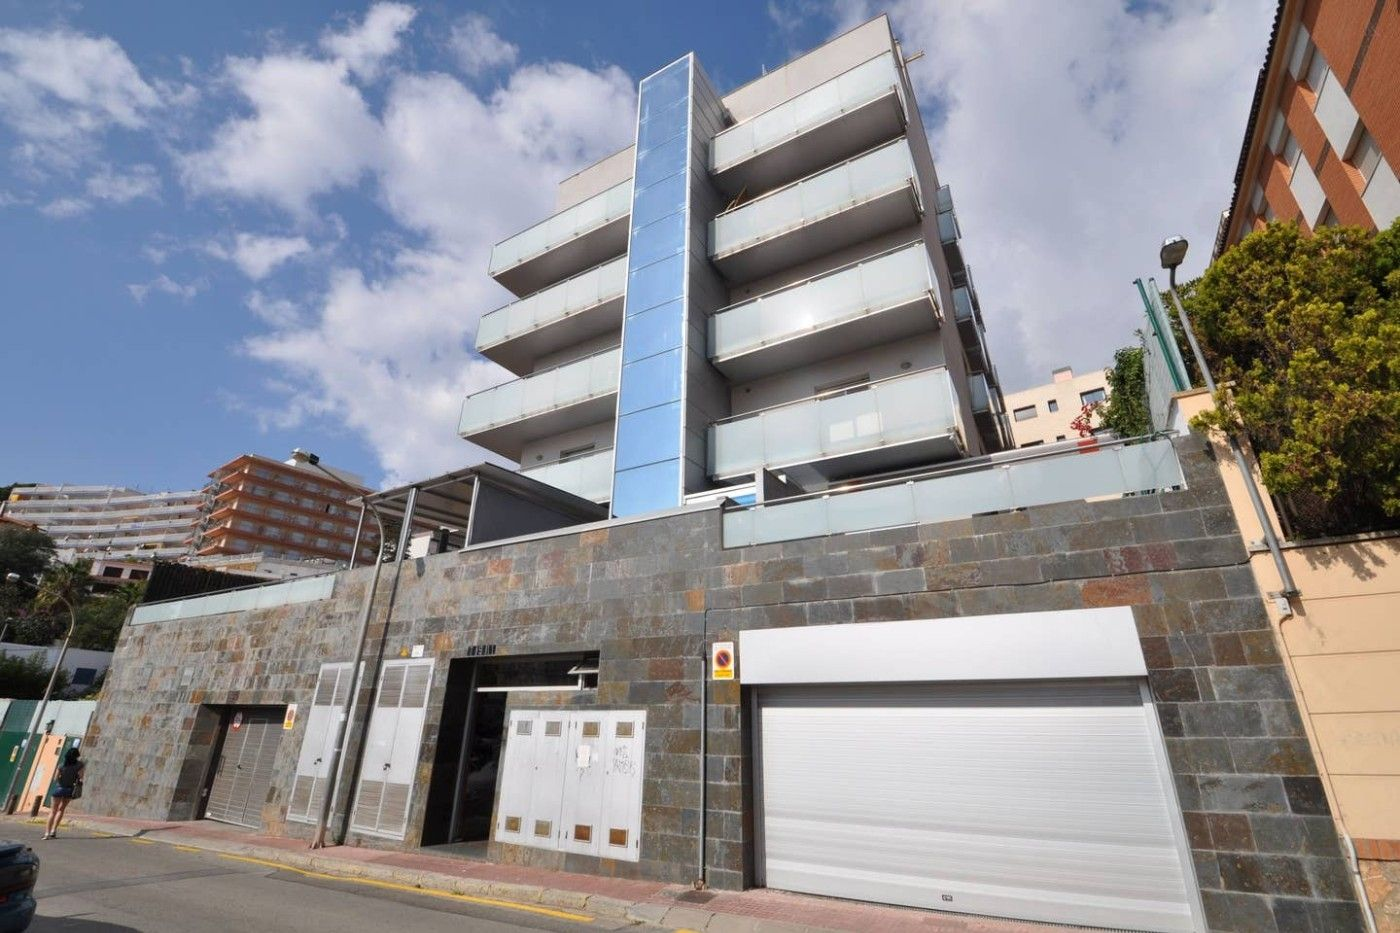 Alquiler Apartamento en Carrer sant jordi, 7. Sea& beach family apartments